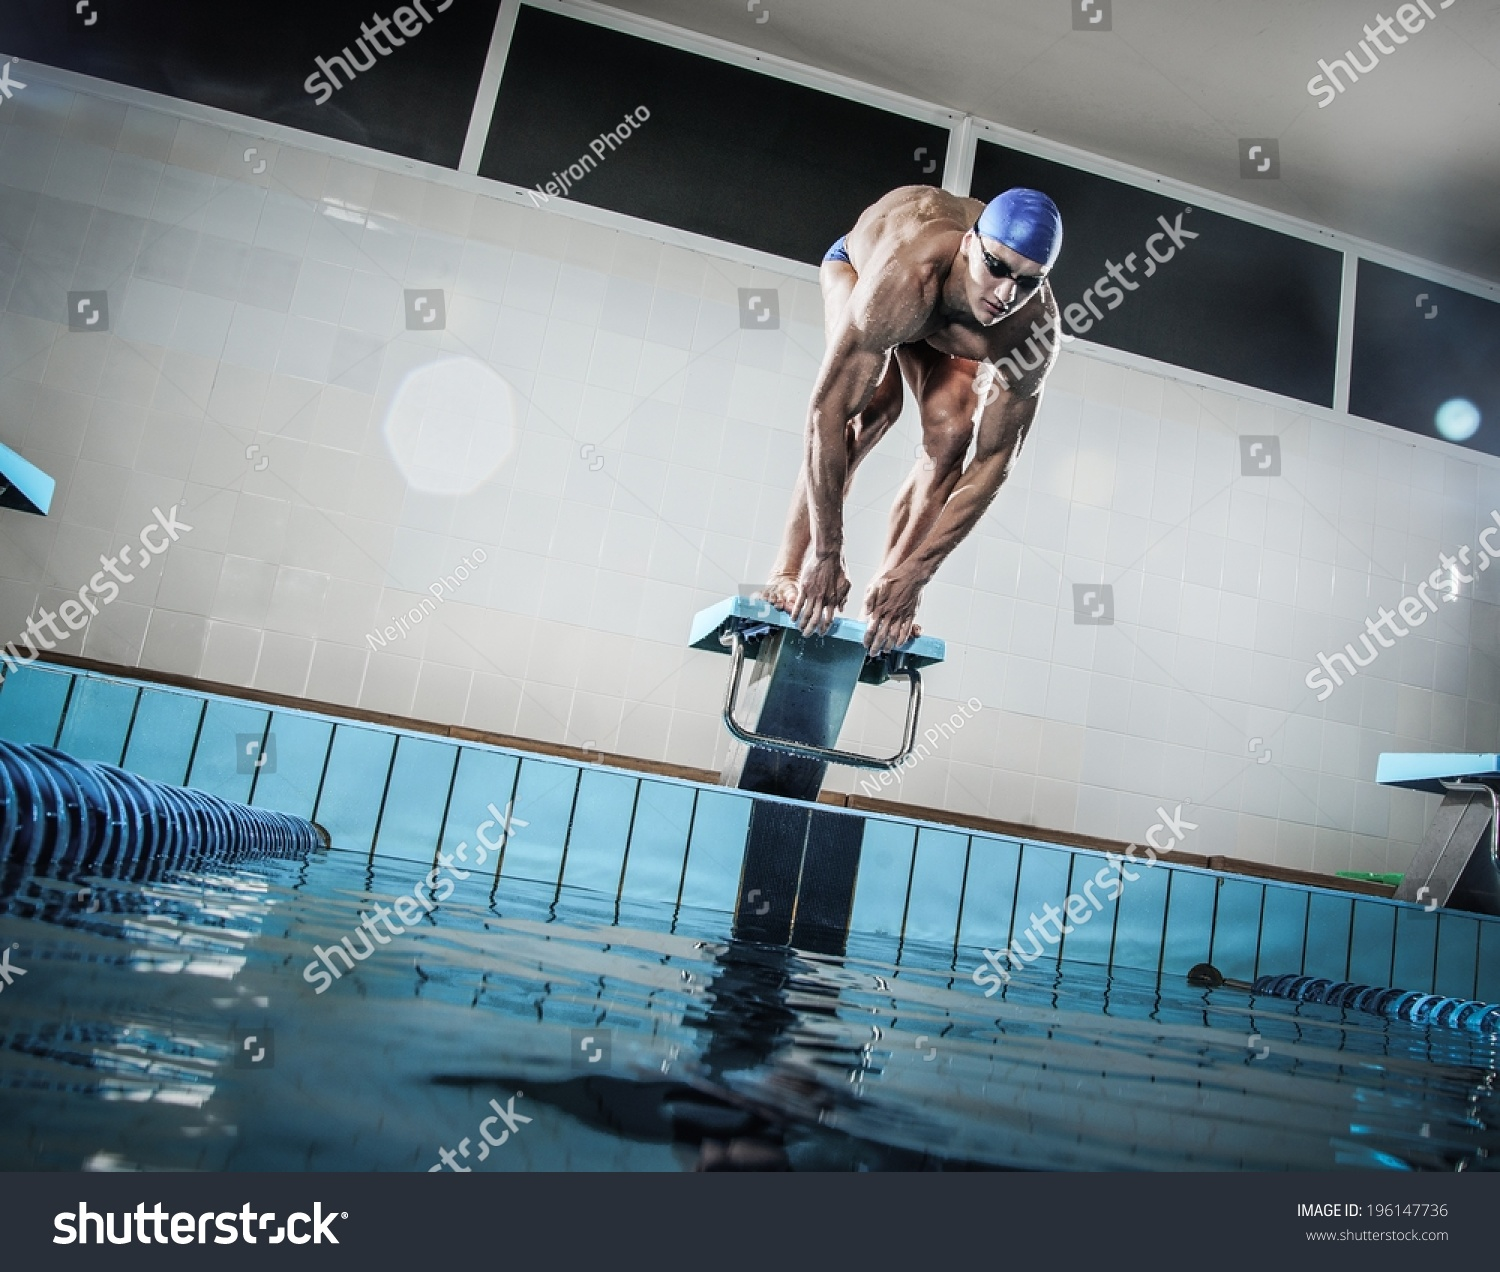 Olympic Swimming Pool In Person: Young Muscular Swimmer Low Position On Stock Photo